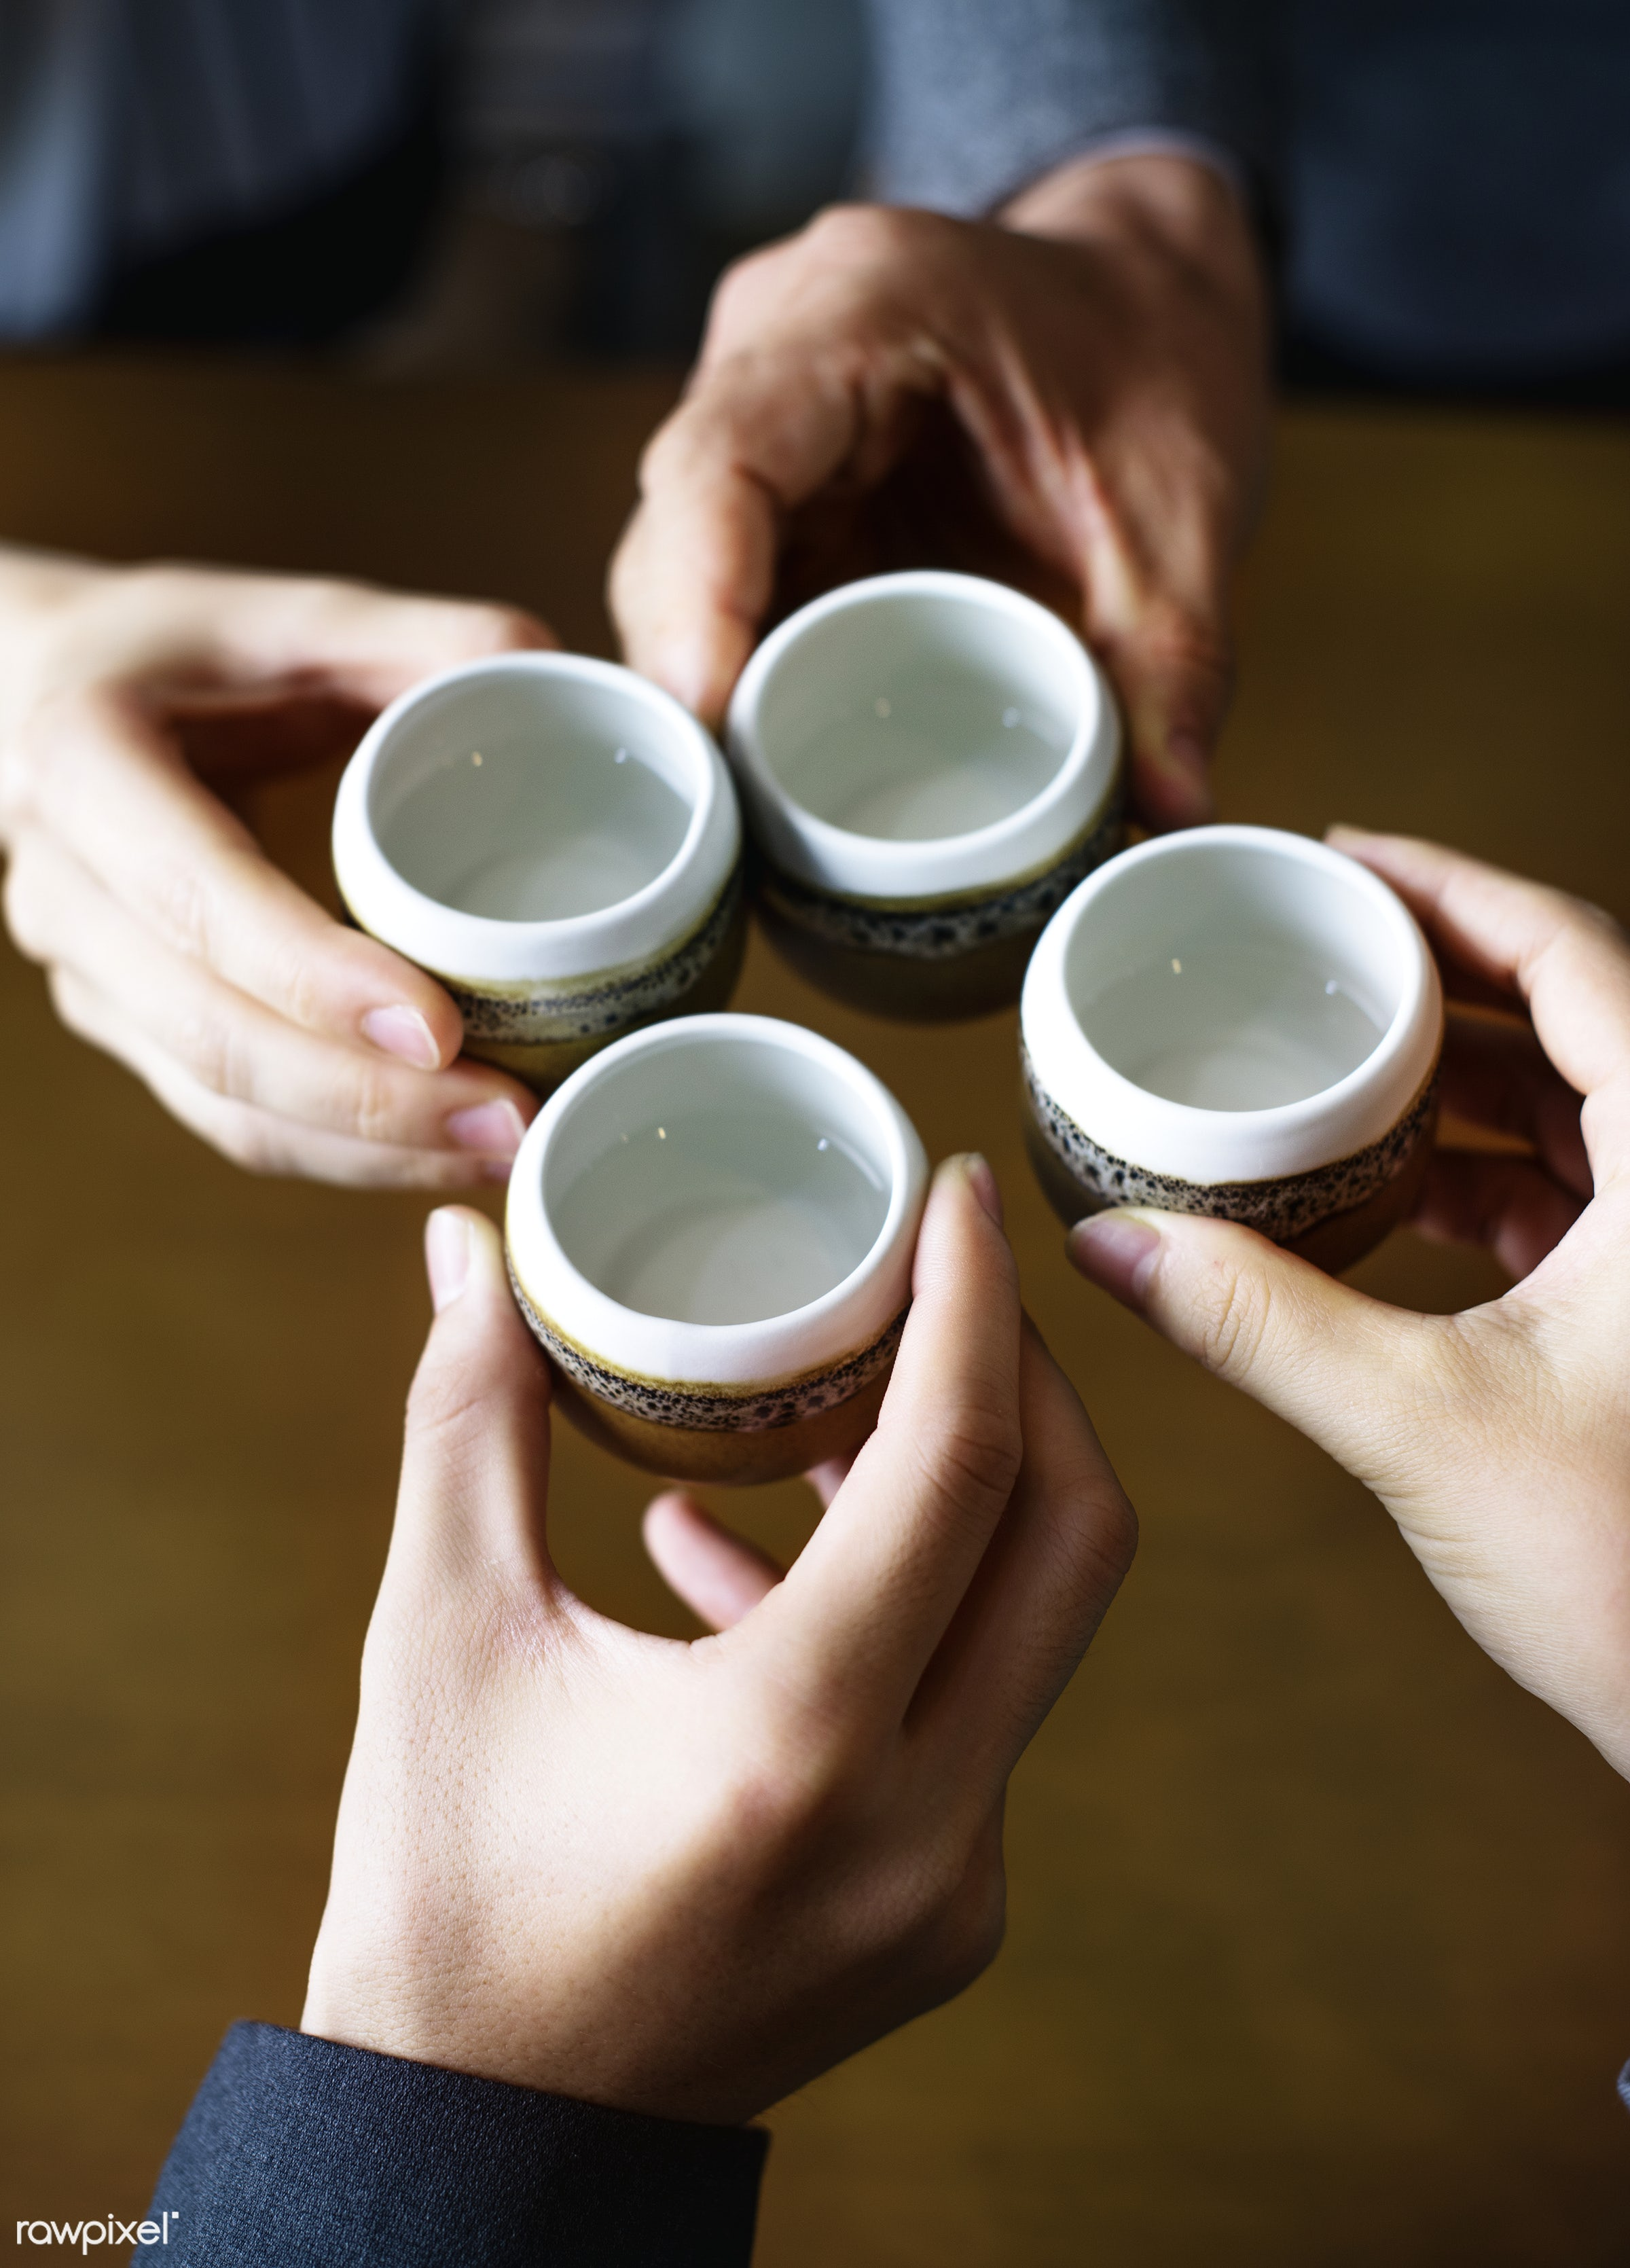 Japanese friends tea party - japanese, japan, asia, asian, celebration, ceremony, cheers, culture, drinking, family, formal...